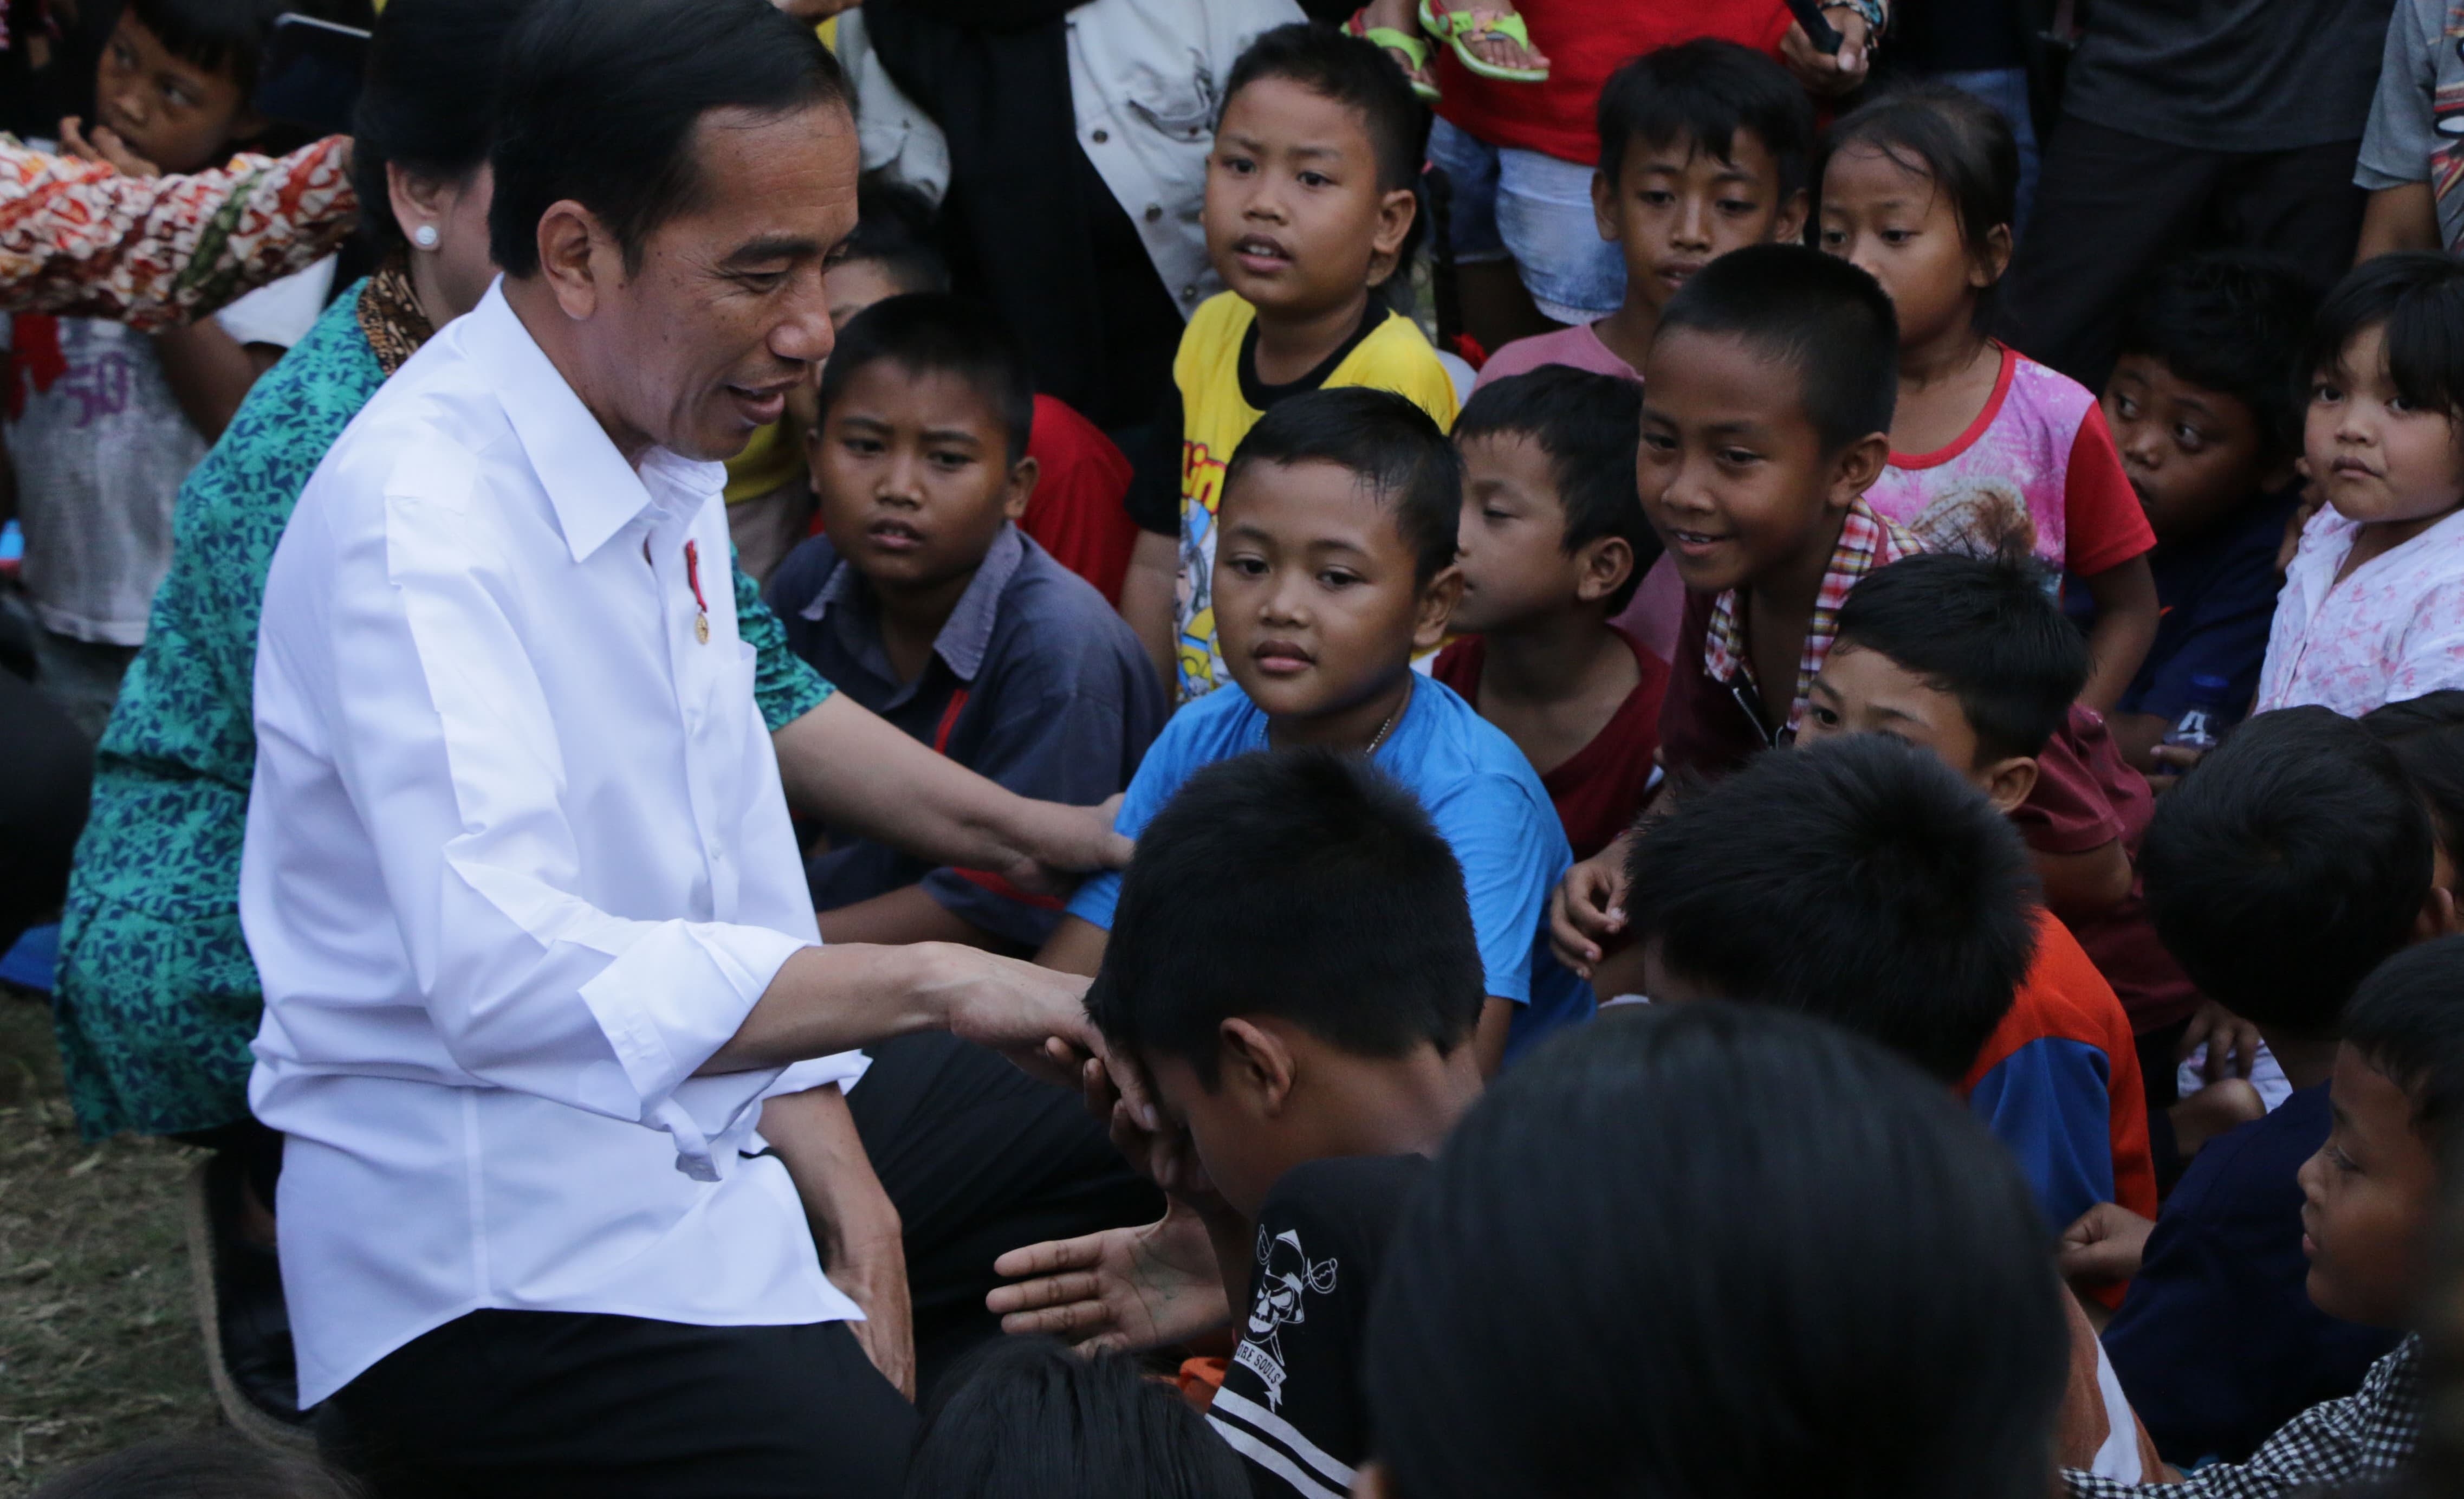 Indonesian President Joko Widodo (Photo: Megiza Asmail/Getty)